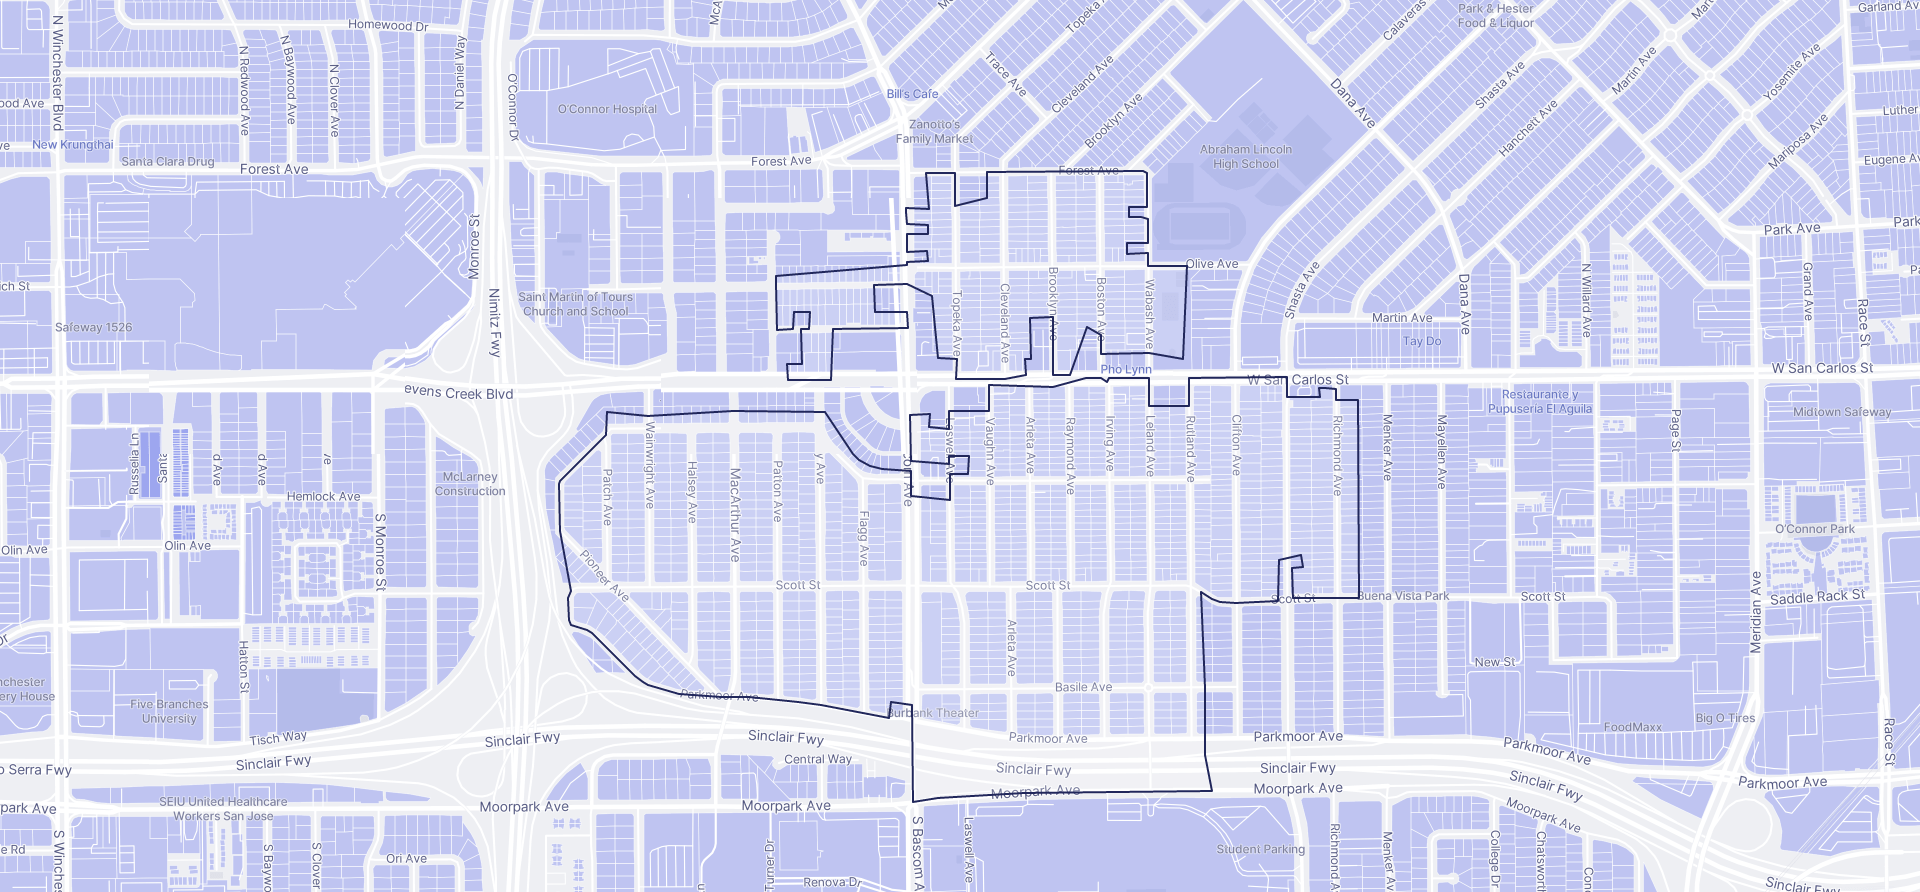 Image of Burbank boundaries on a map.